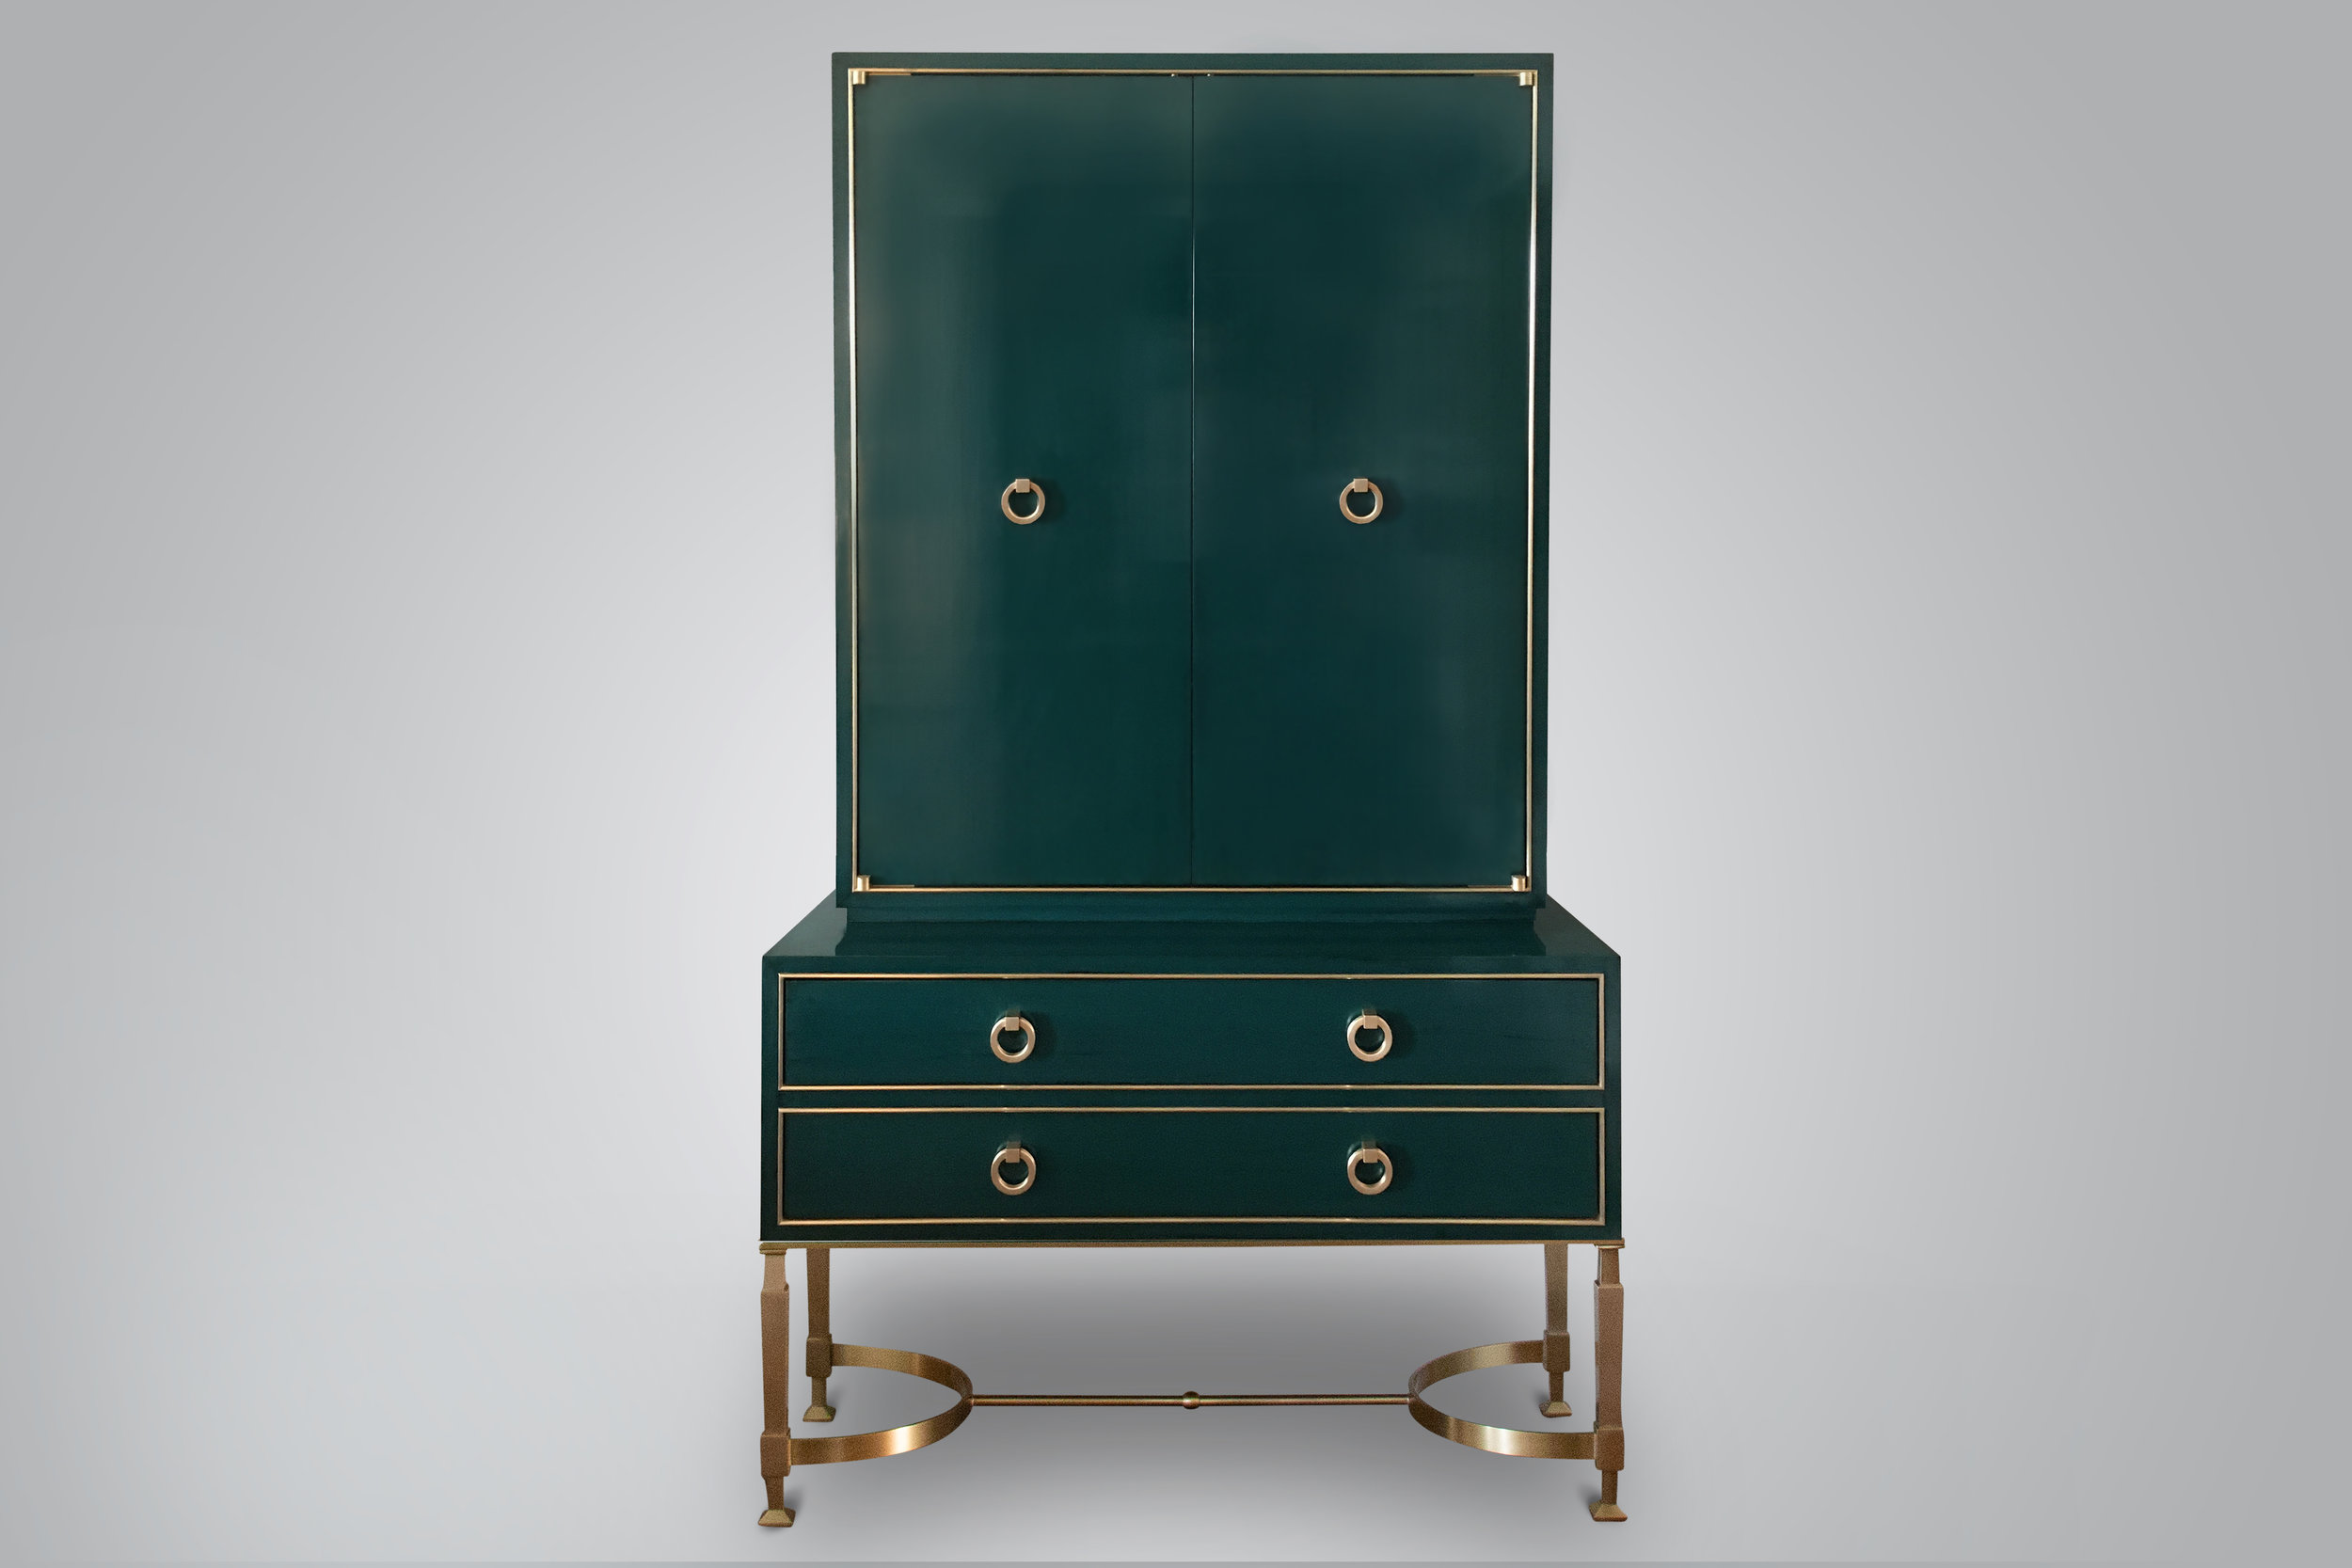 Green-Chest-Front-View.jpg